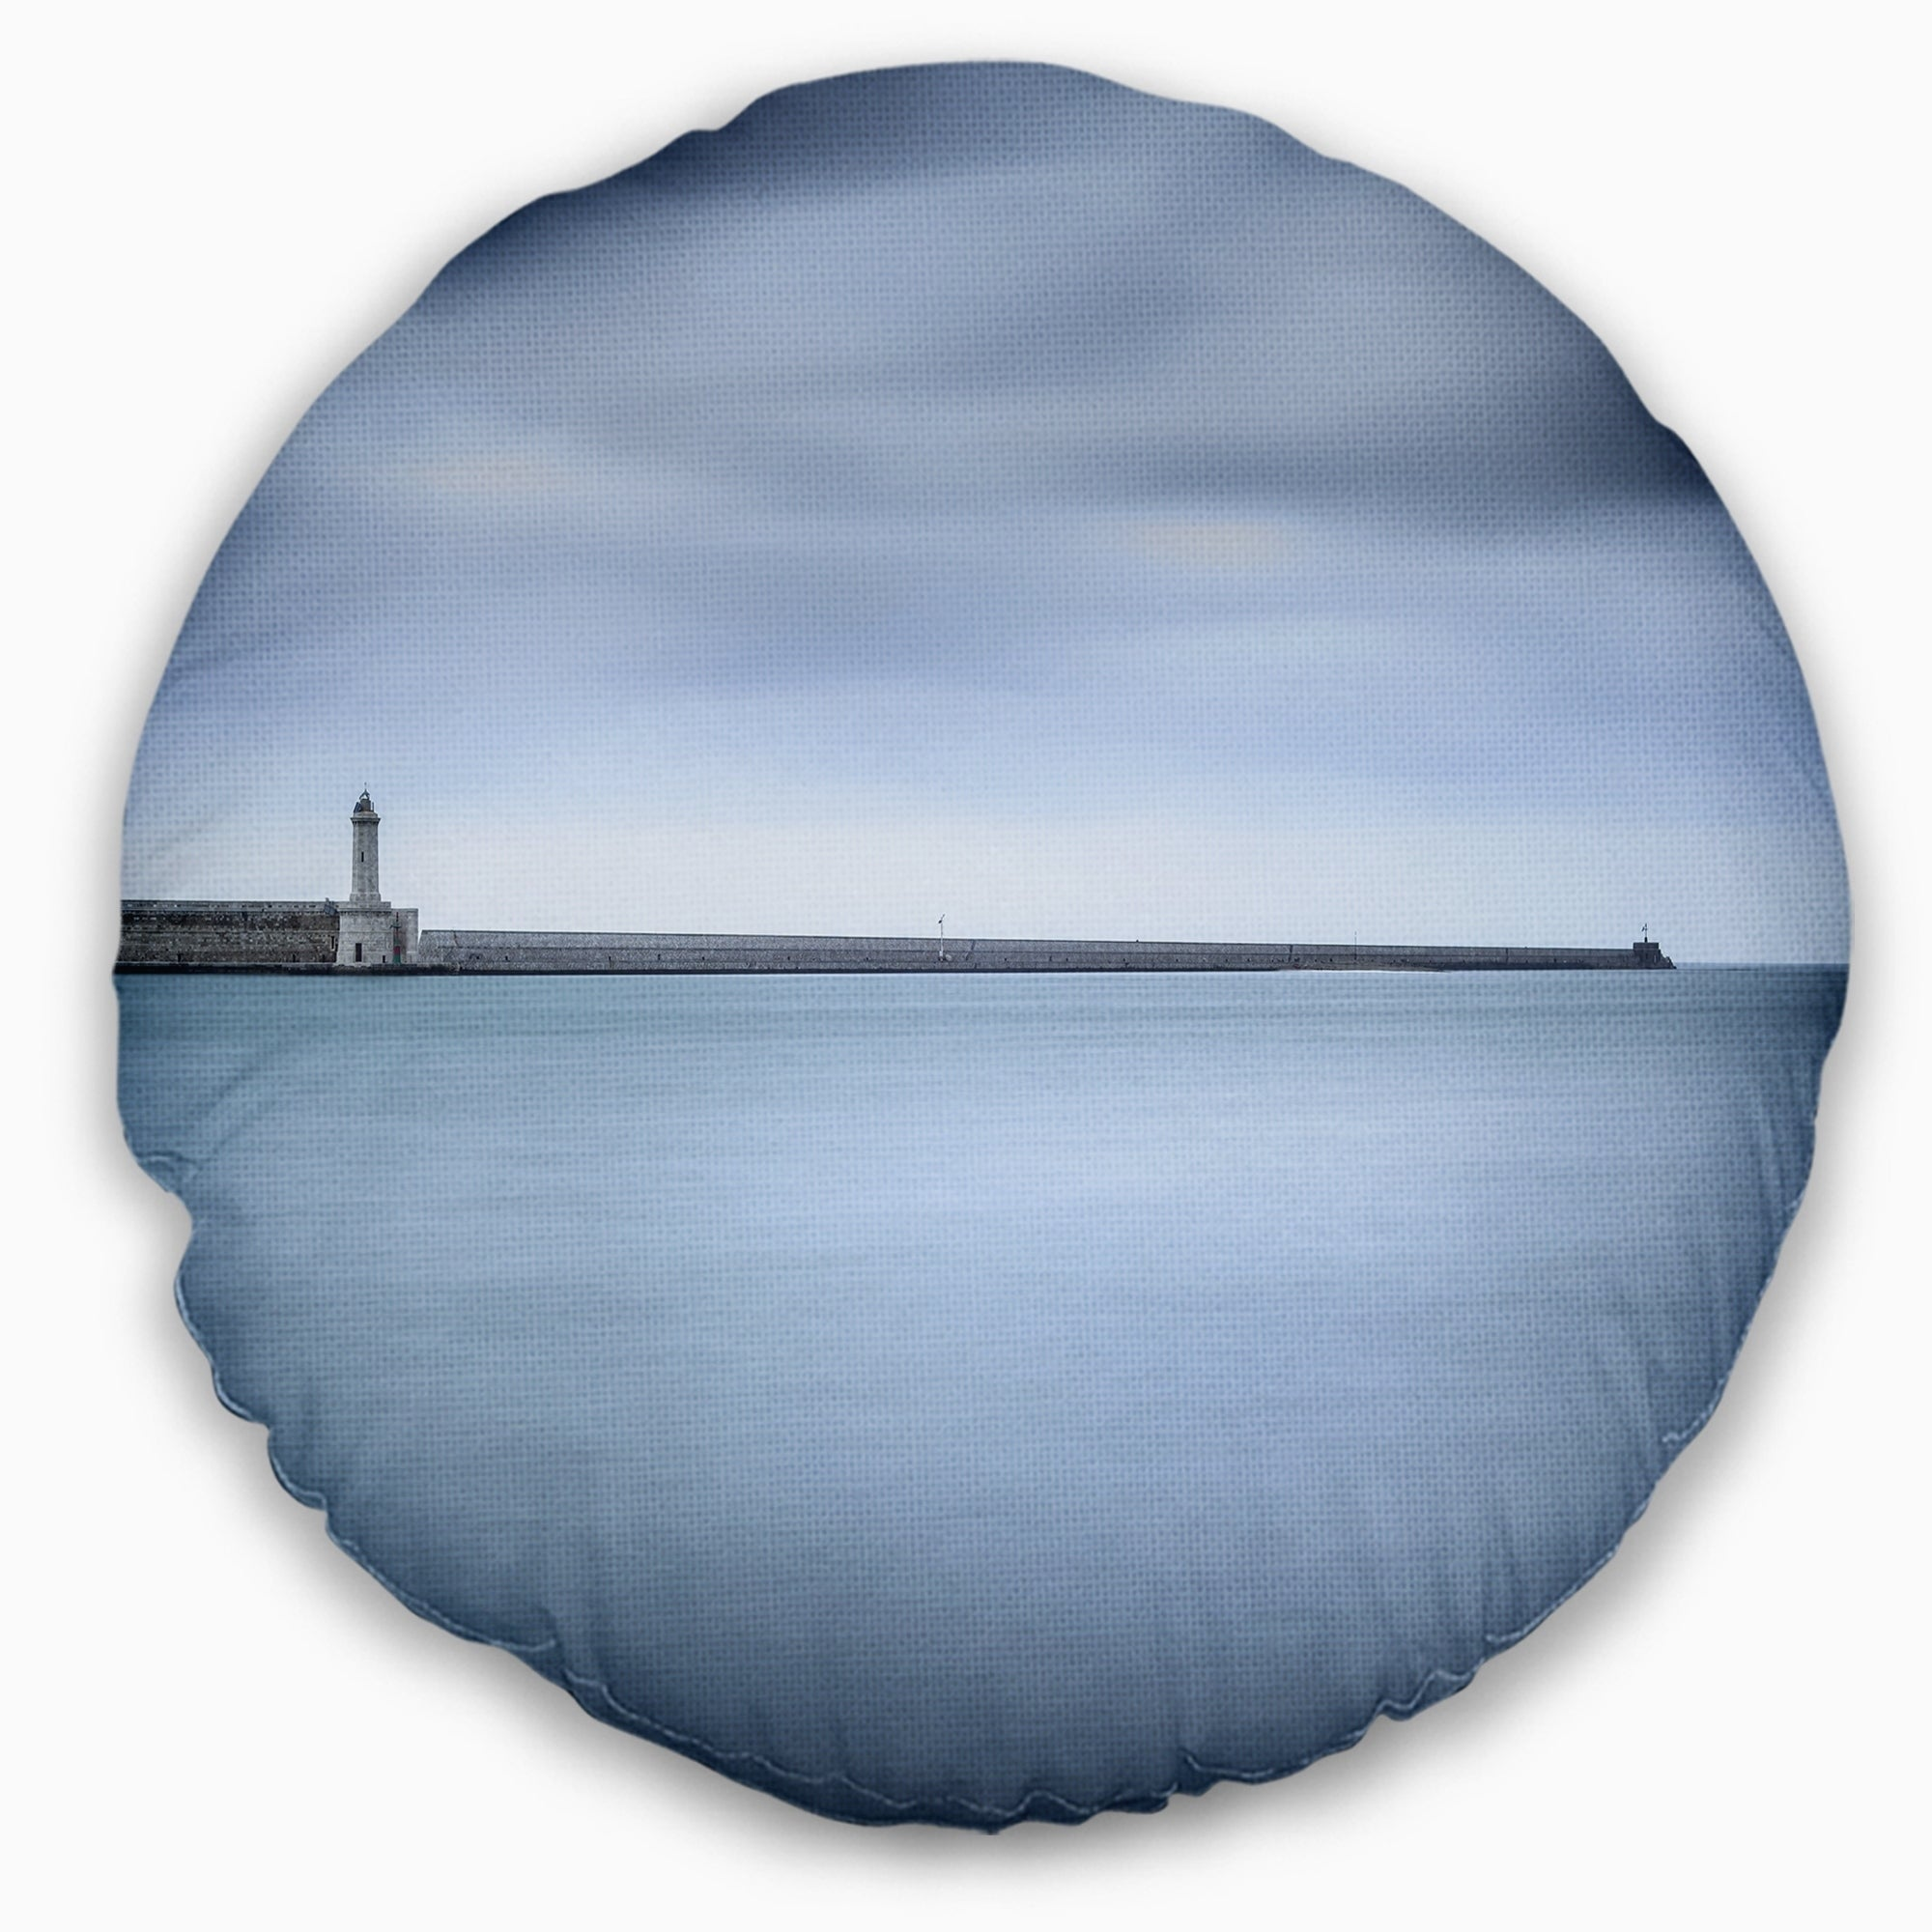 Designart Breakwater And Soft Water Under Clouds Landscape Wall Throw Pillow On Sale Overstock 20944632